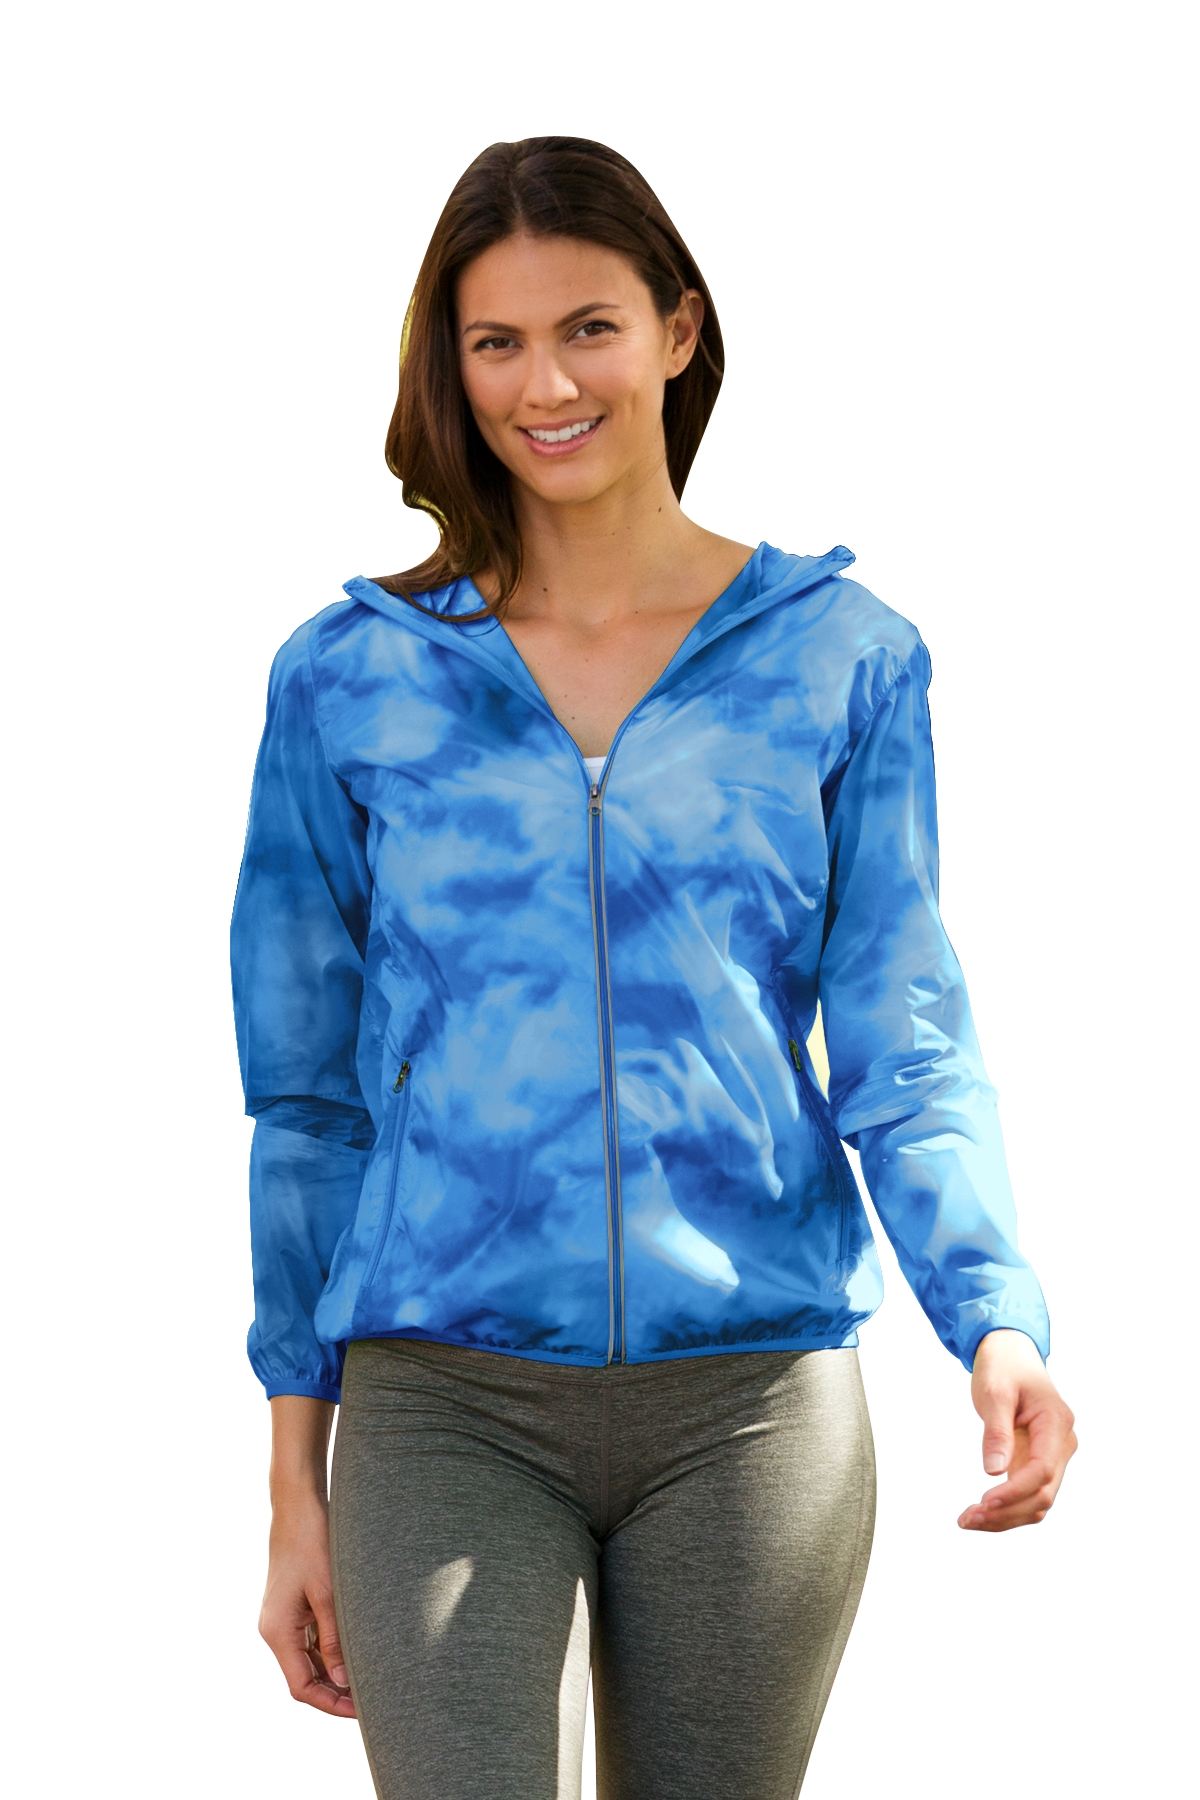 Vantage 7151 - Women's Cloud Jacket